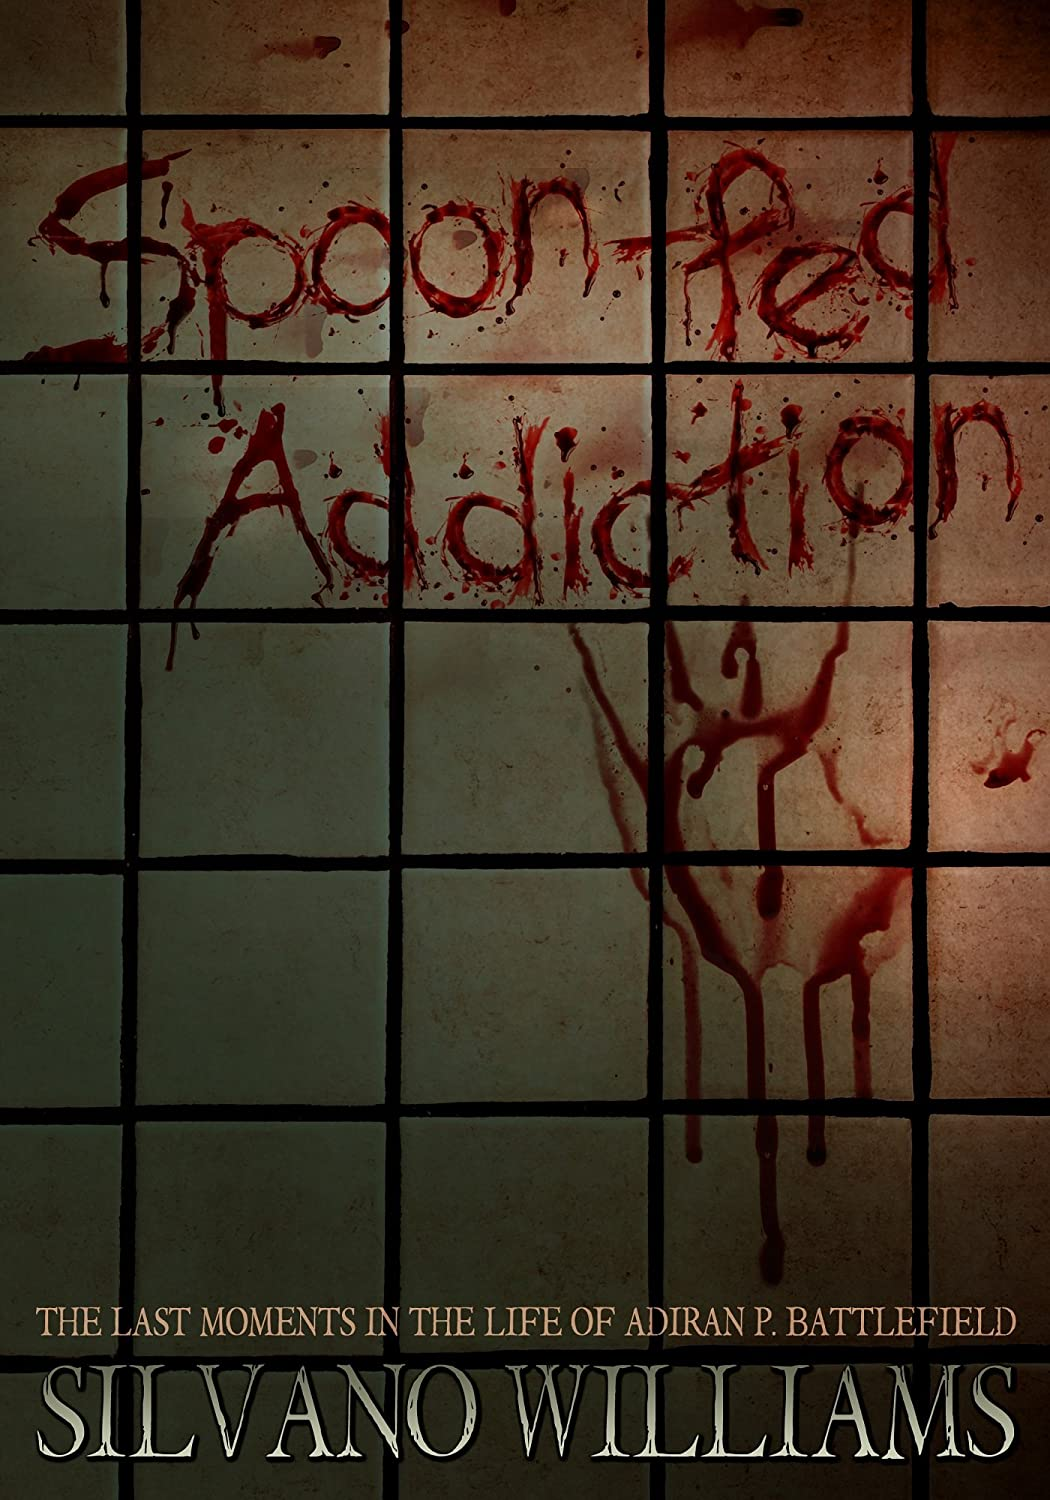 Spoon-fed Addiction